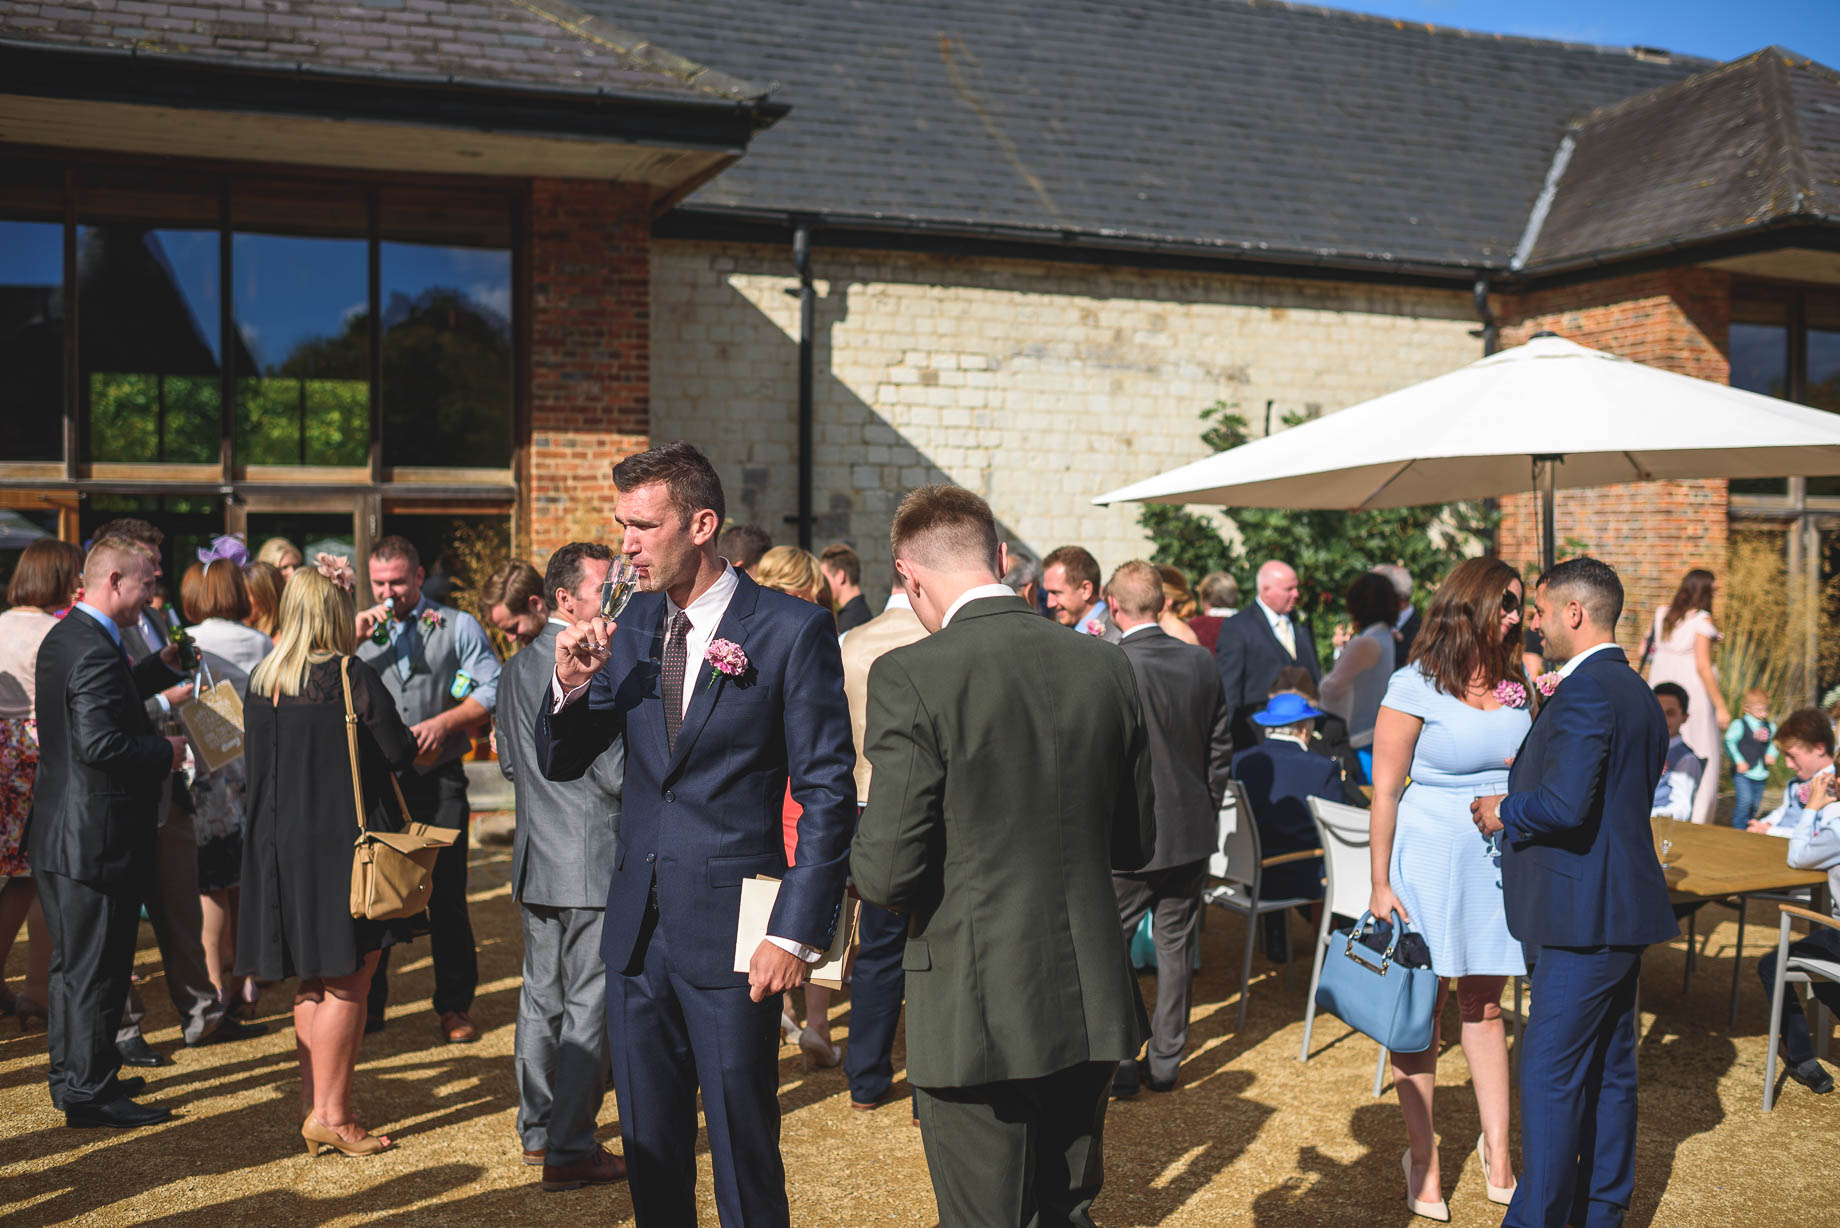 Bury Court Barn wedding photography - Guy Collier - Kate and Russ (84 of 187)